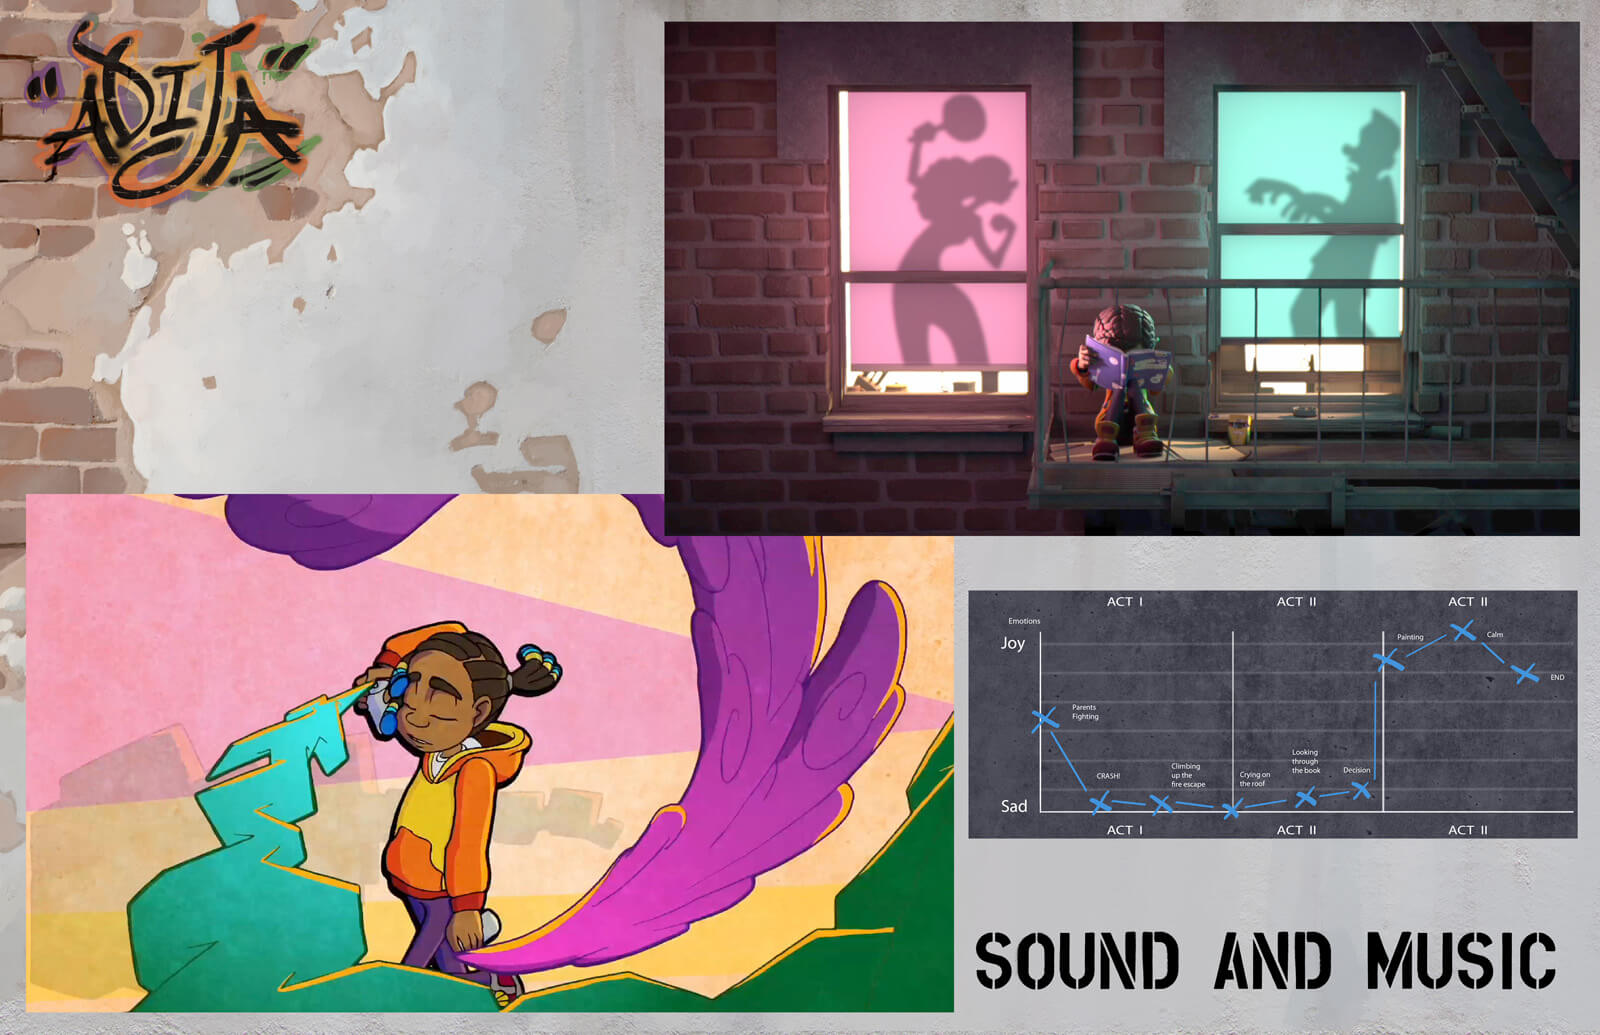 Sound and music presentation slide for the film Adija depicting the emotional arc of the soundtrack